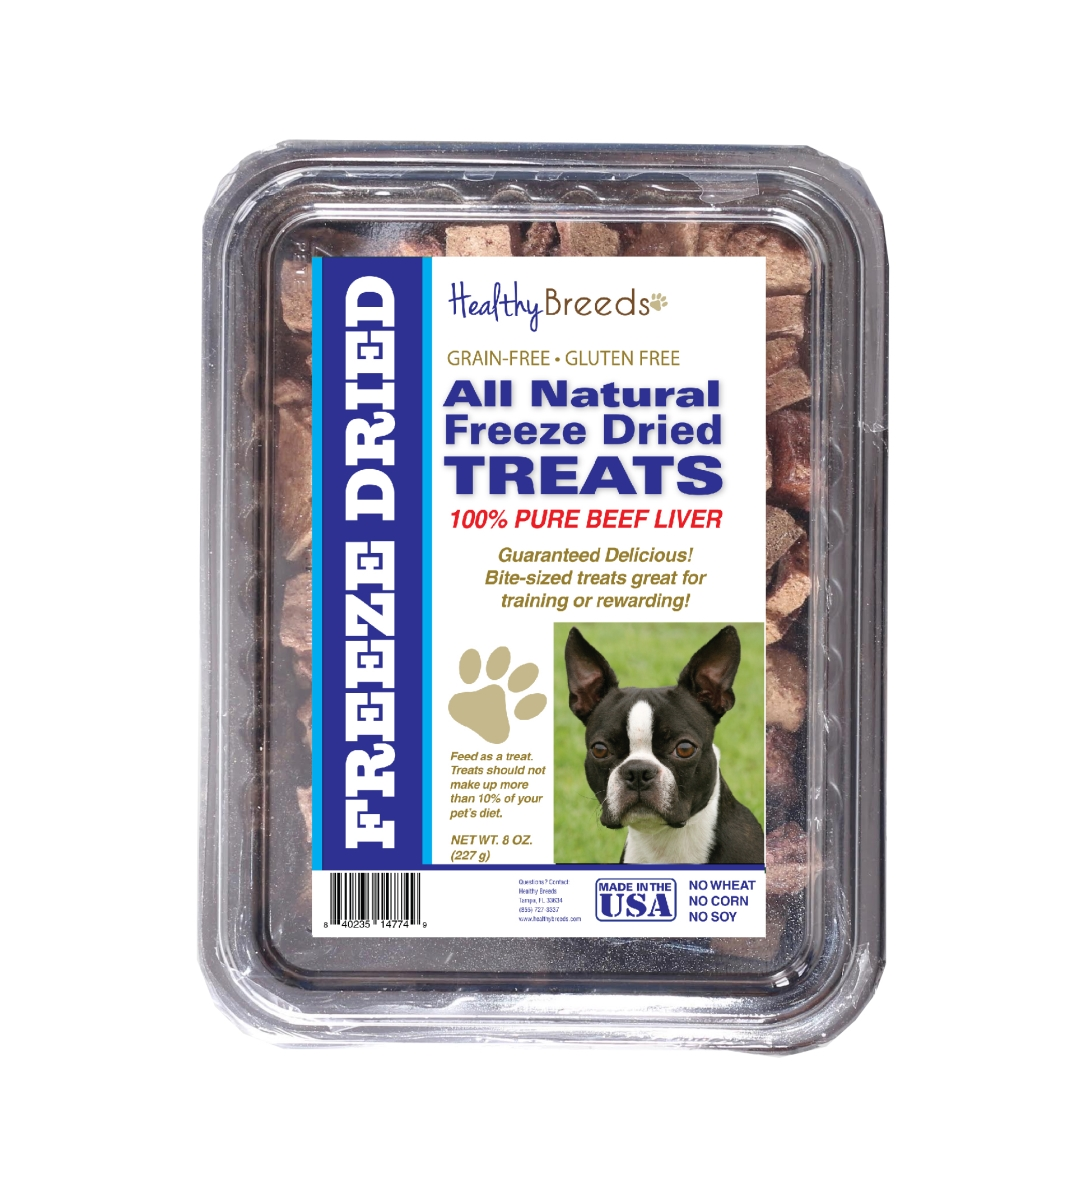 Healthy Breeds 840235147220 10 oz Boston Terrier All Natural Freeze Dried Treats Beef Liver